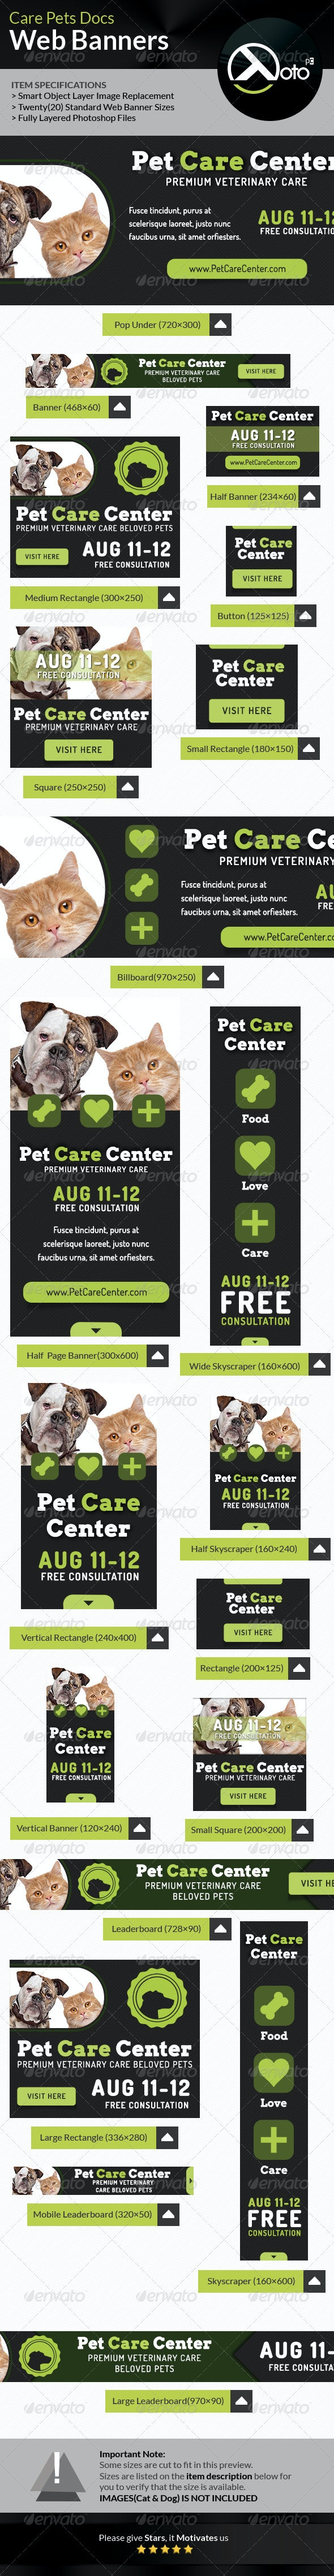 Care Pets Docs Veterinary  Web Banner - Banners & Ads Web Elements